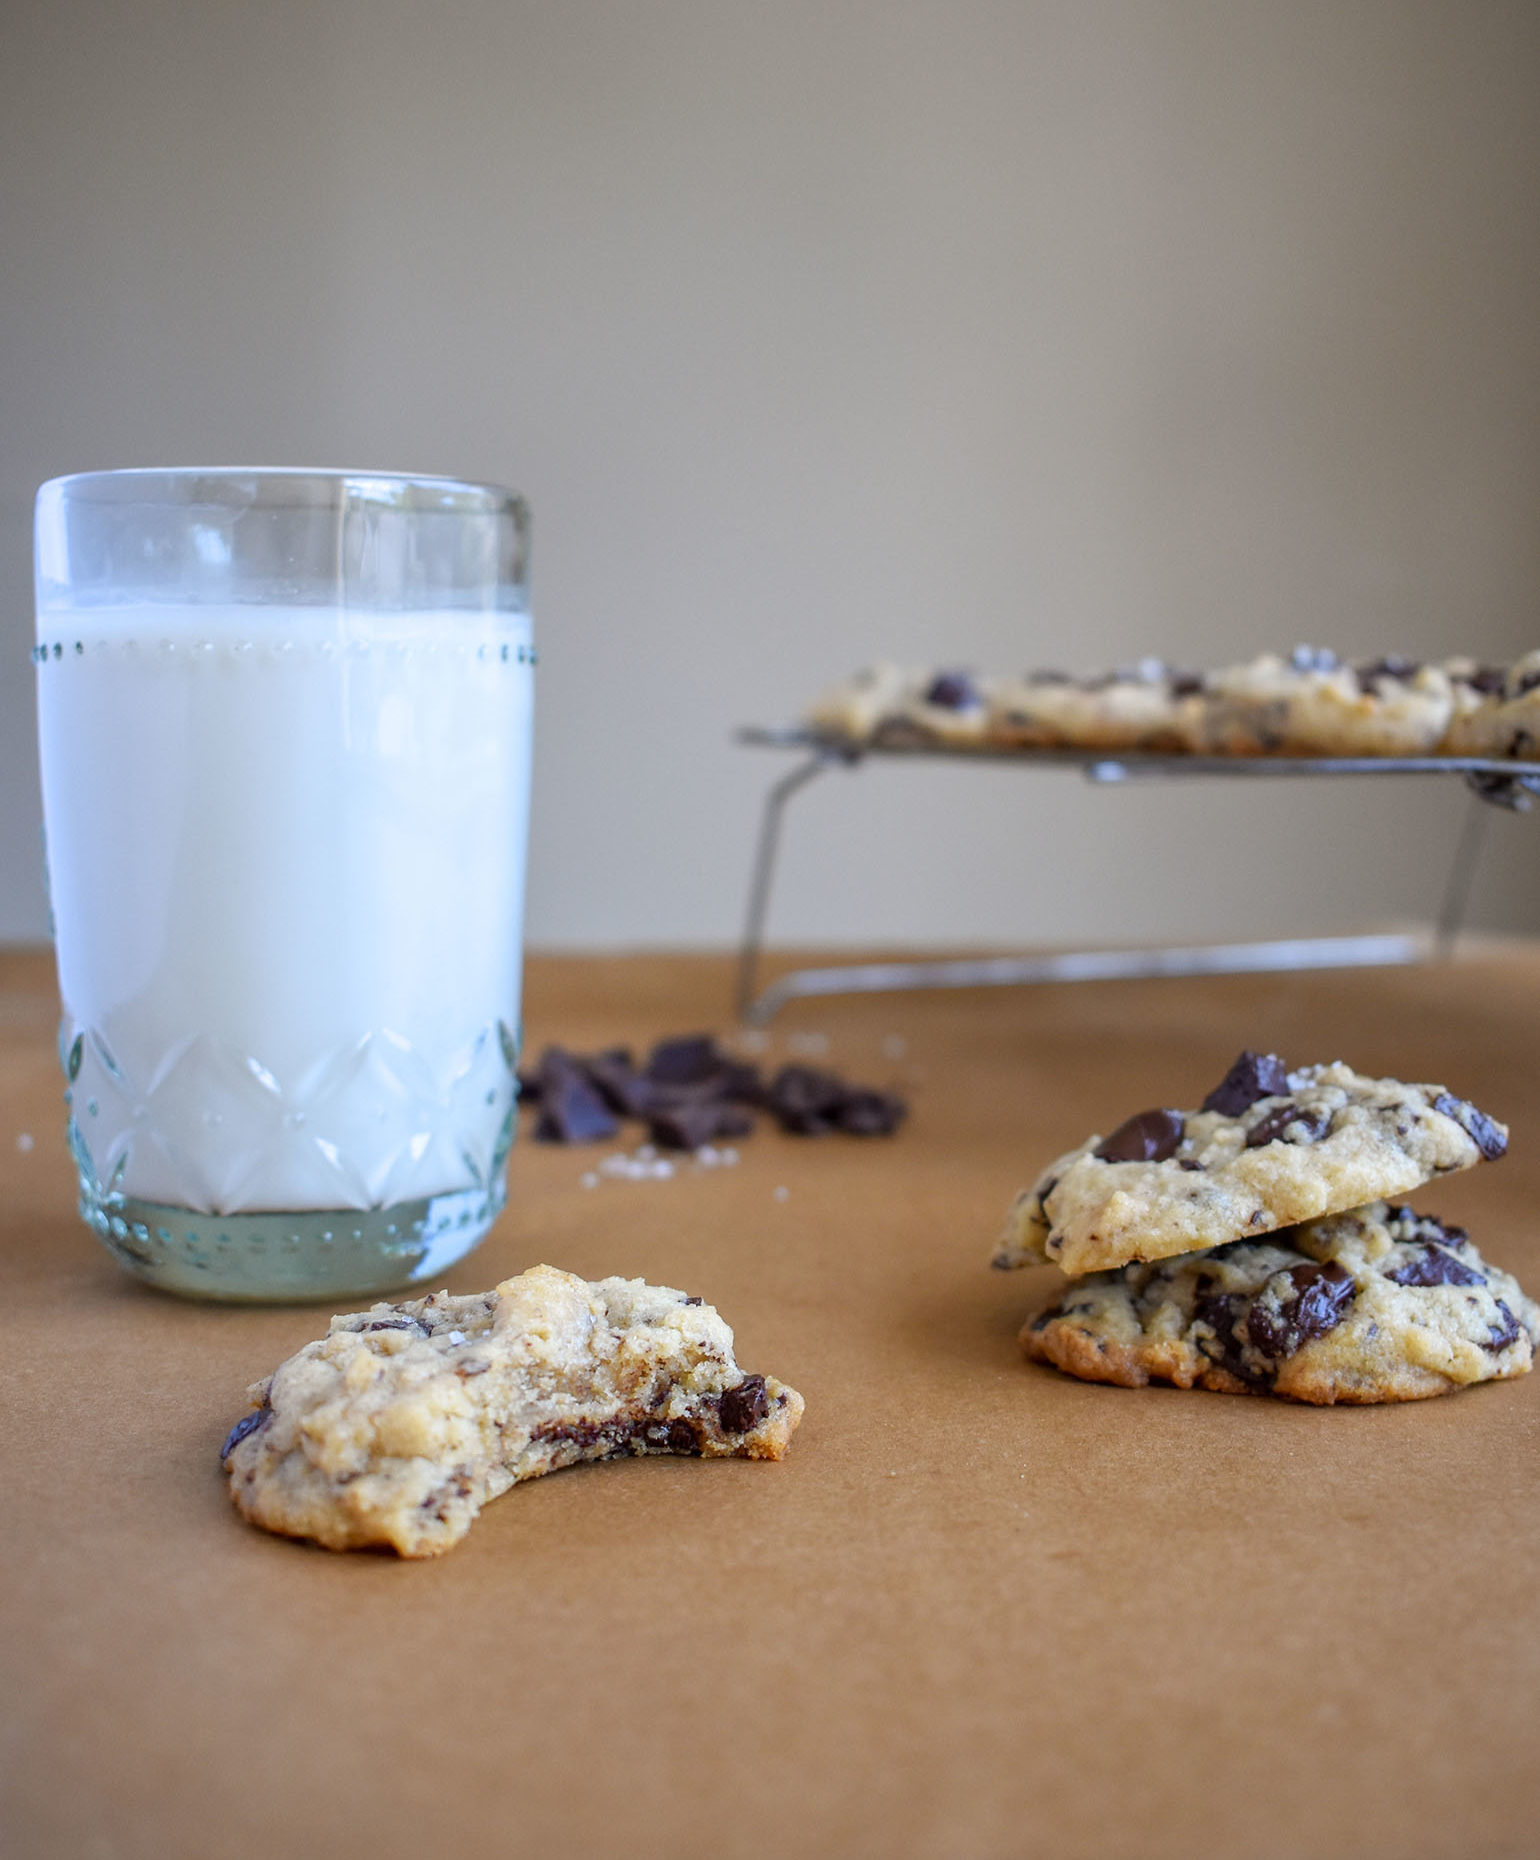 Tahini chocolate cookies with a glass of milk